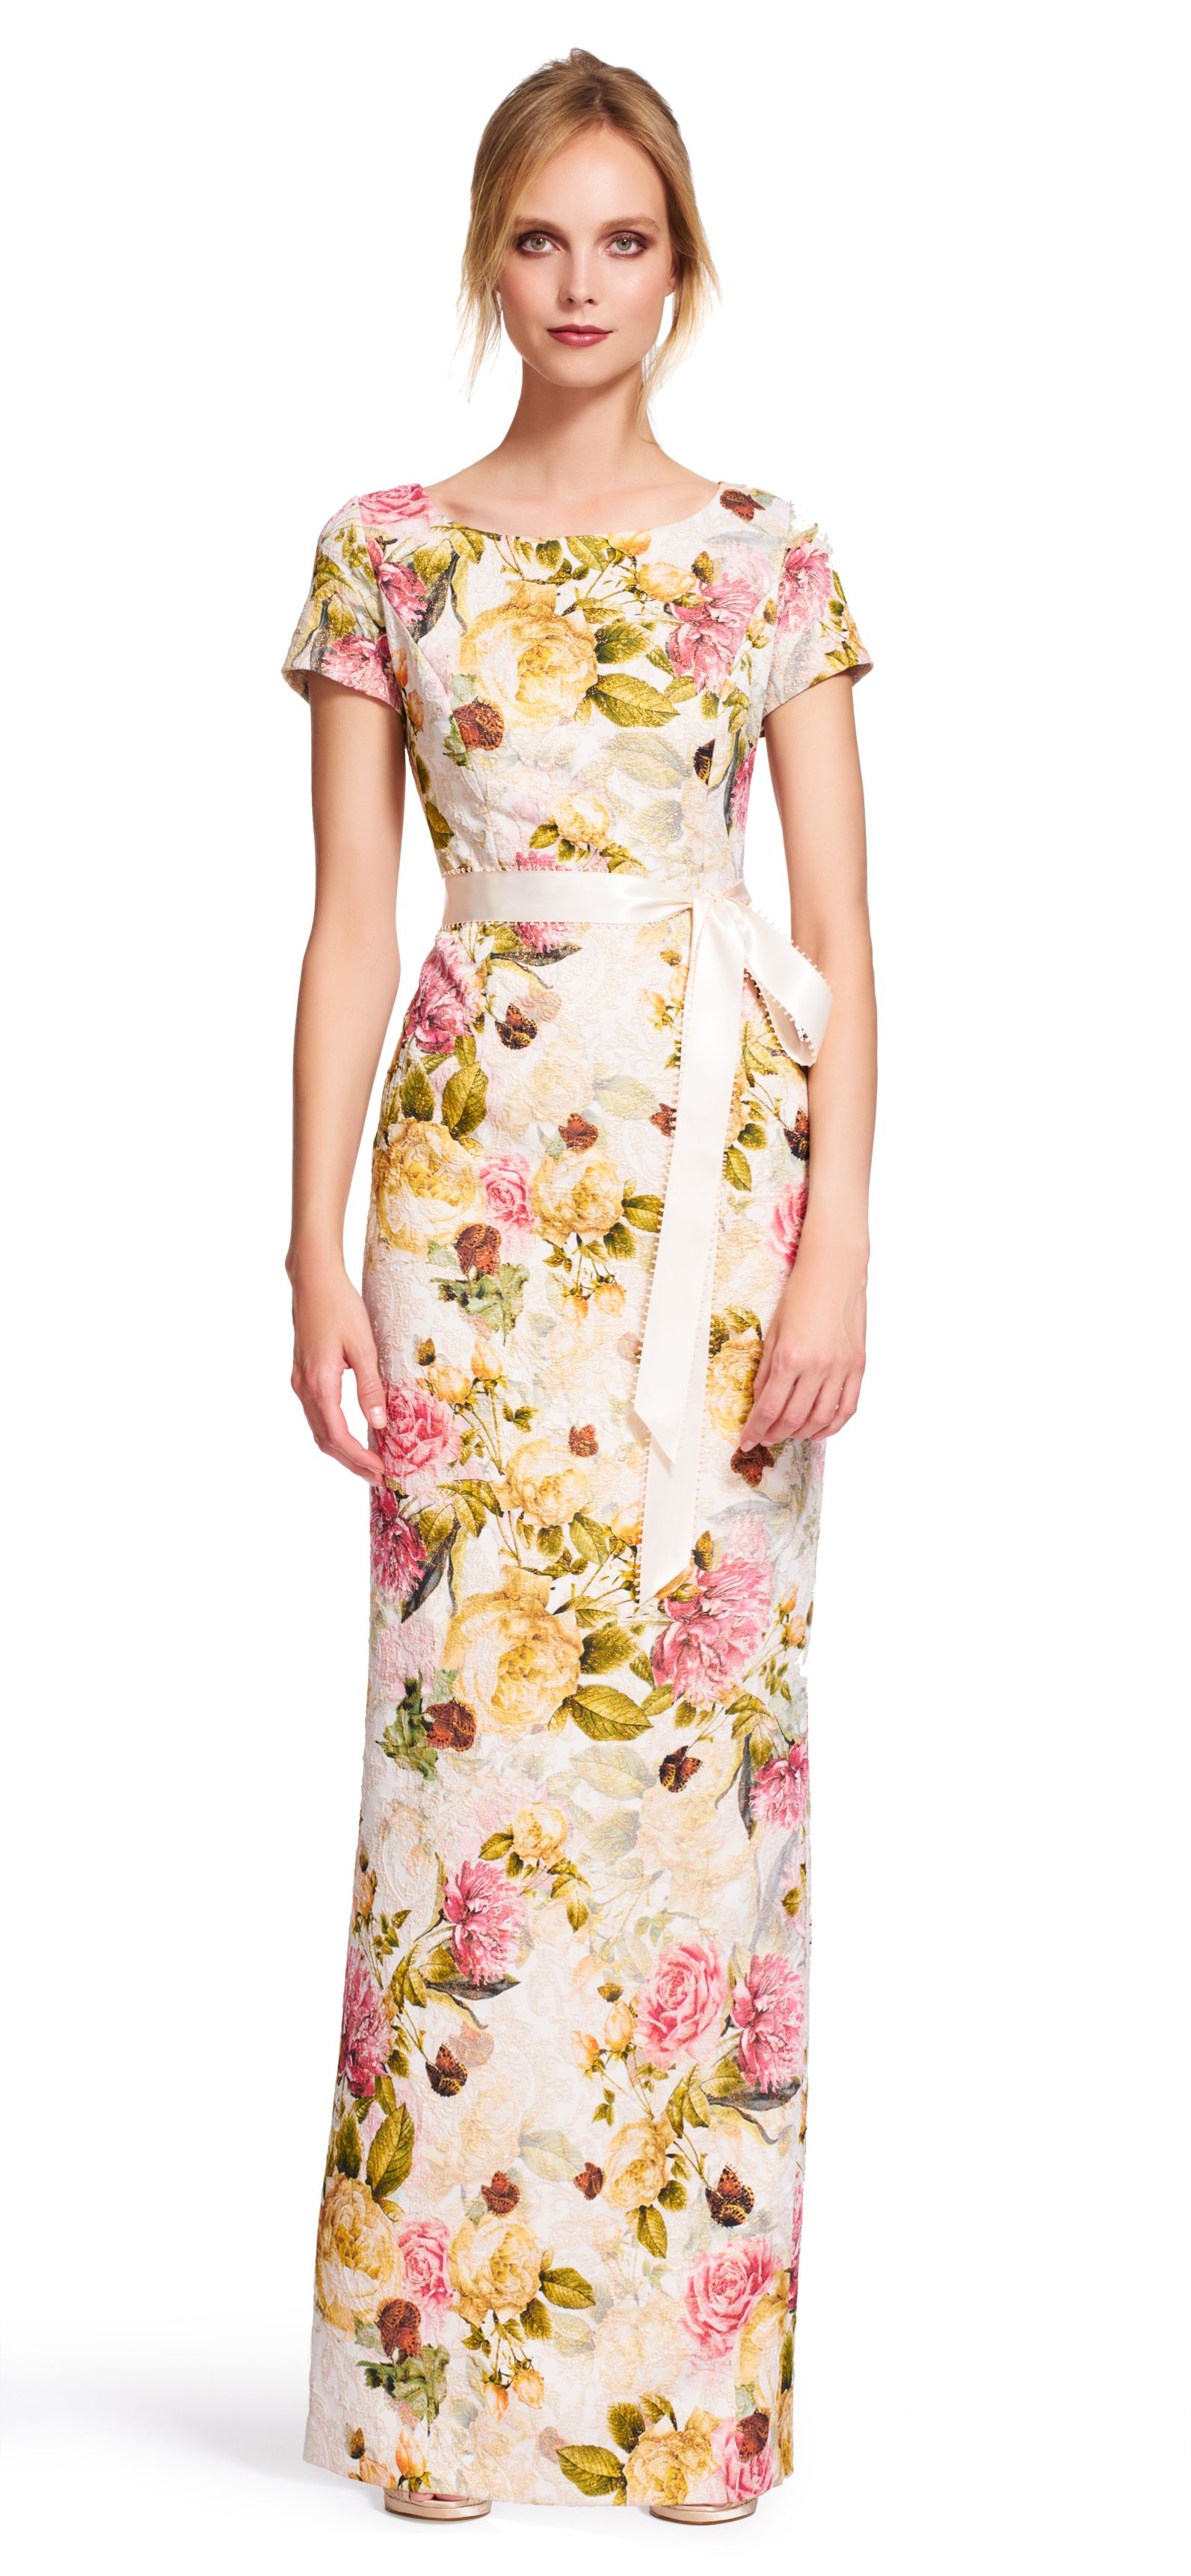 Short sleeve floral gown with tie sash my style pinterest